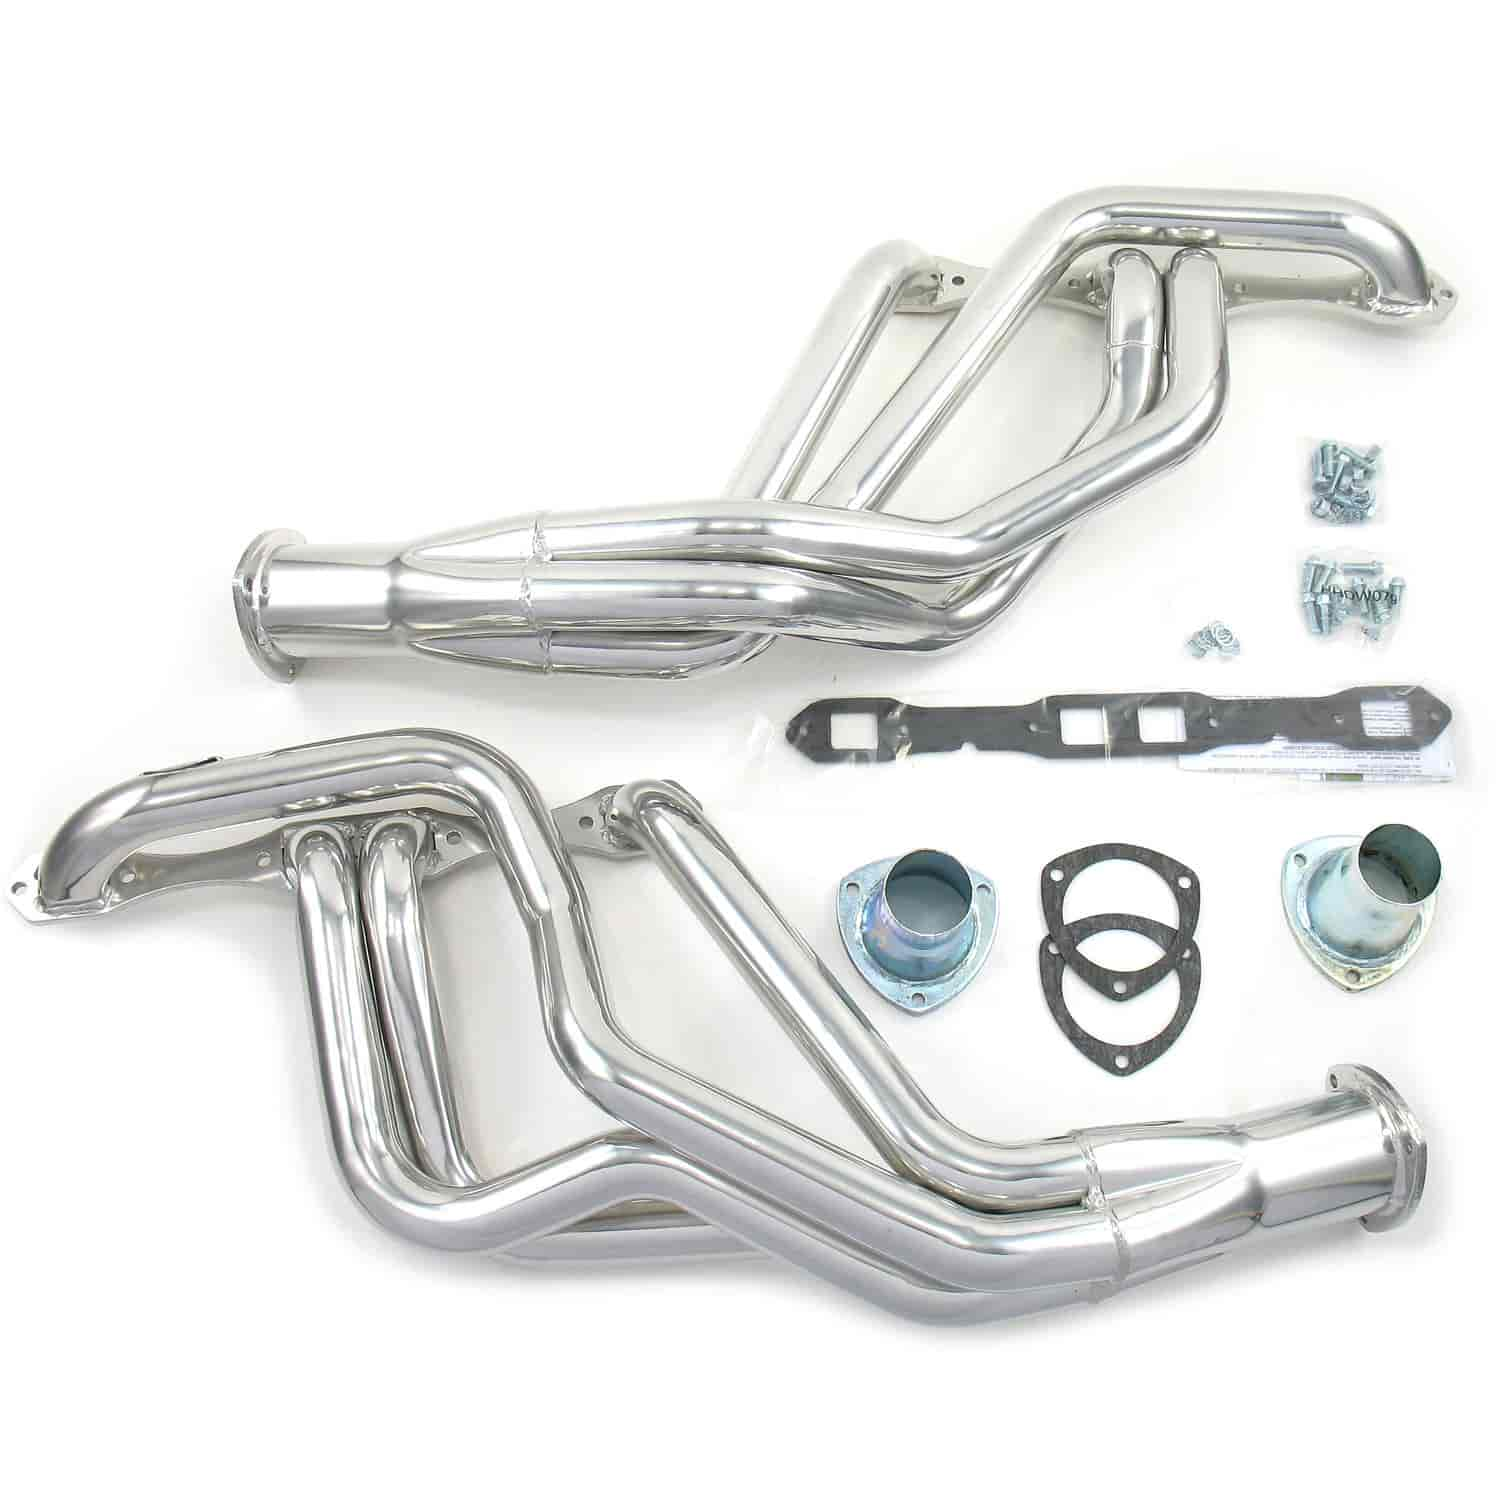 776 d452 doug's headers d452 metallic ceramic coated headers 1962 1974 Electric Exhaust Cutouts Kits at reclaimingppi.co